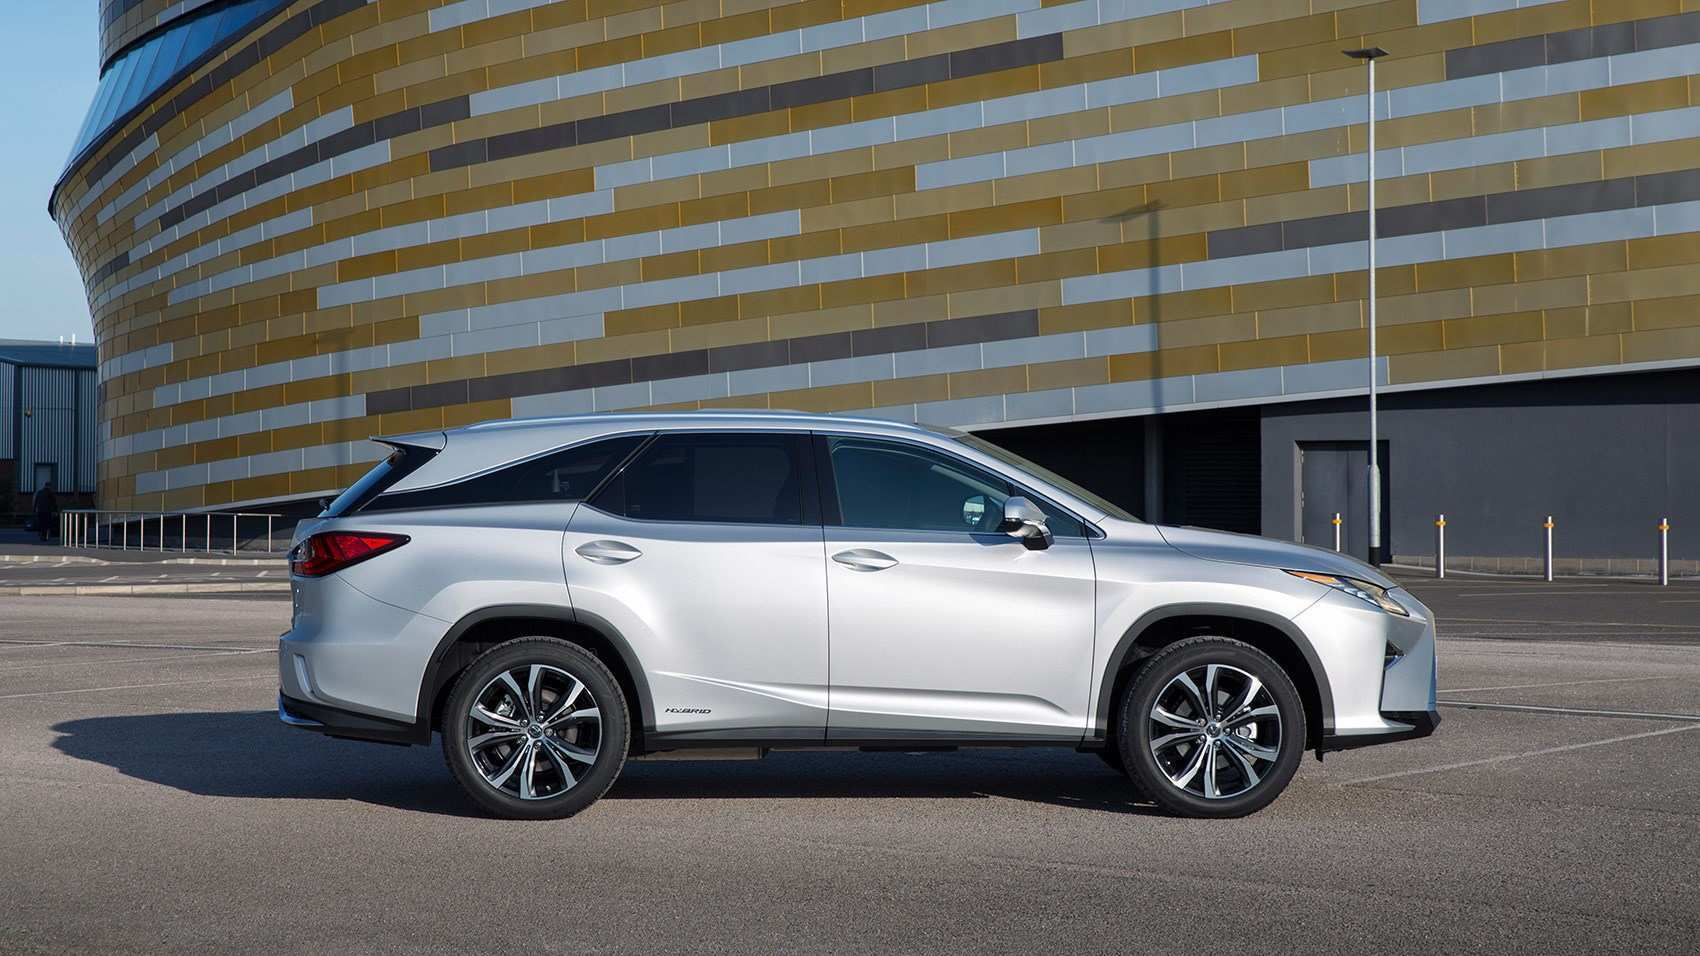 35 Great New Plug In Hybrid Toyota 2019 Engine Concept by New Plug In Hybrid Toyota 2019 Engine